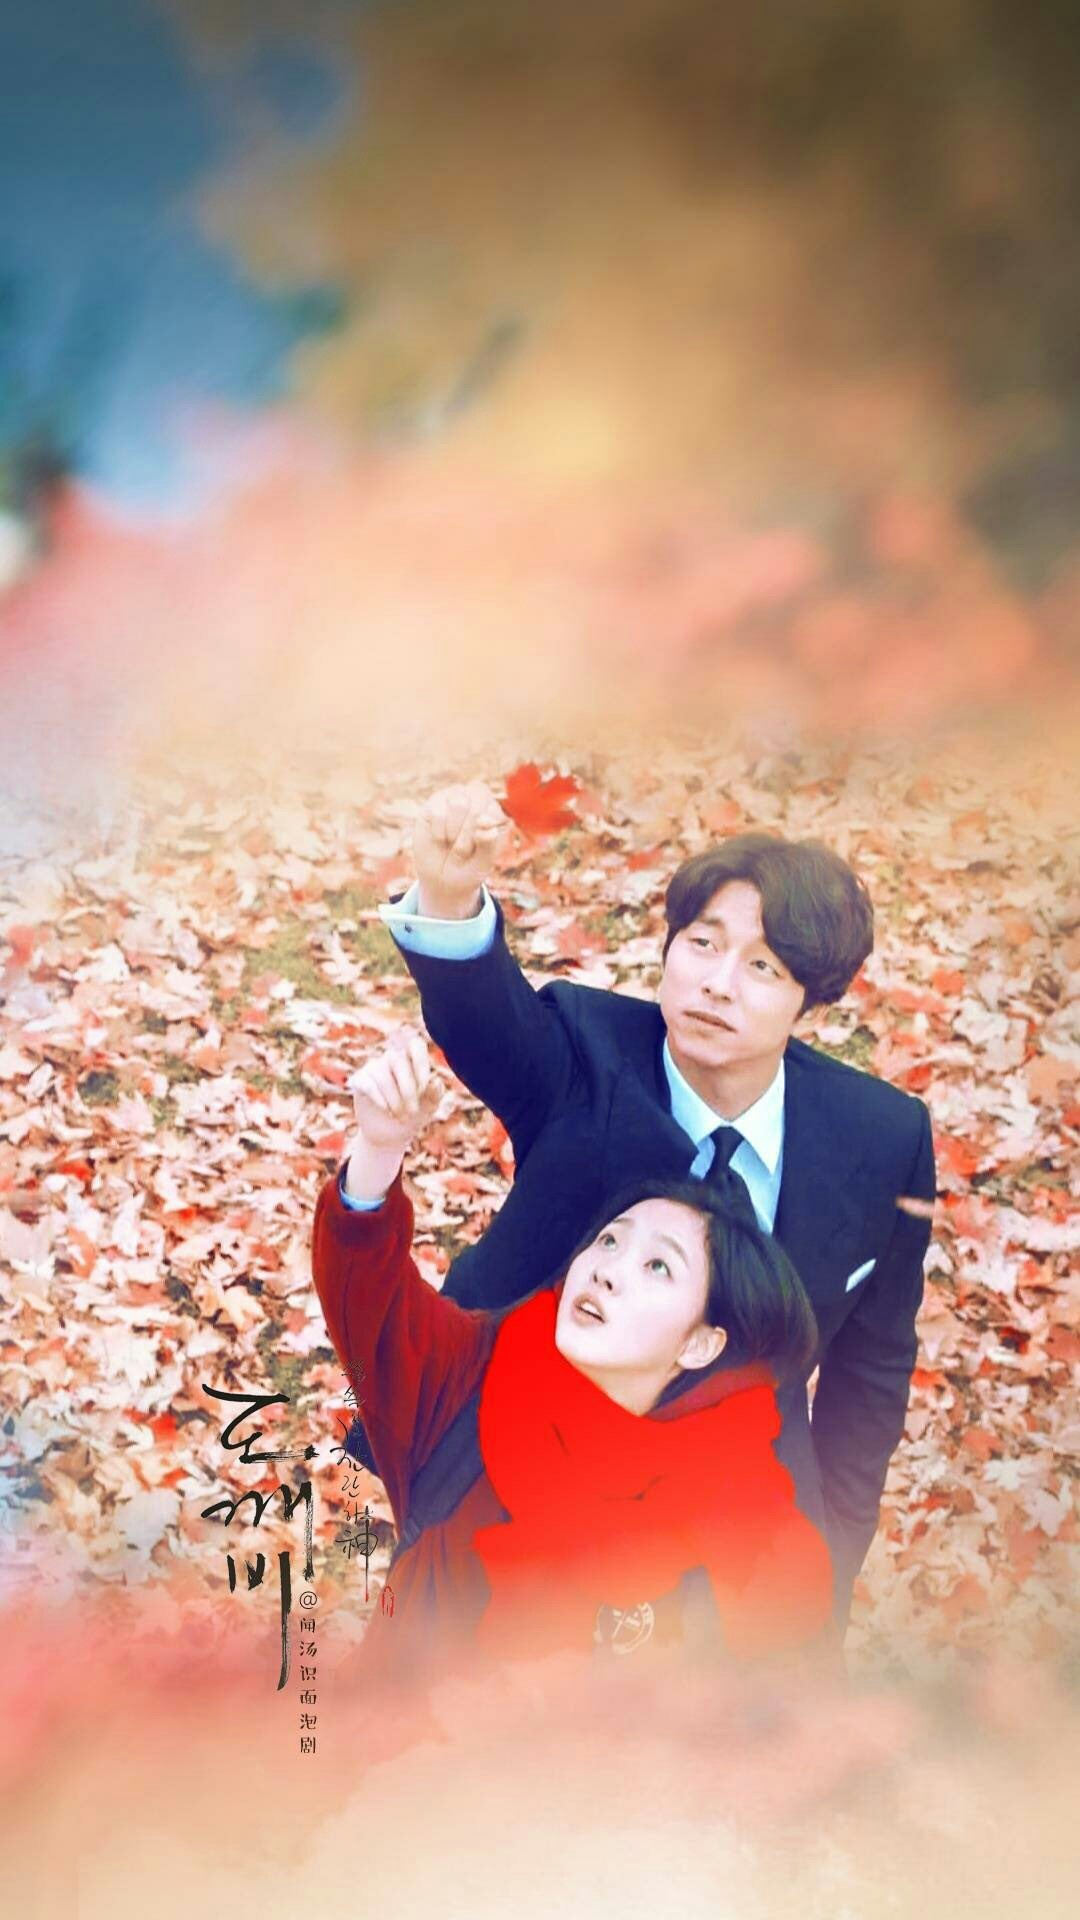 Every Moment I Spent With You - Goblin Kdrama Wallpaper Hd - HD Wallpaper